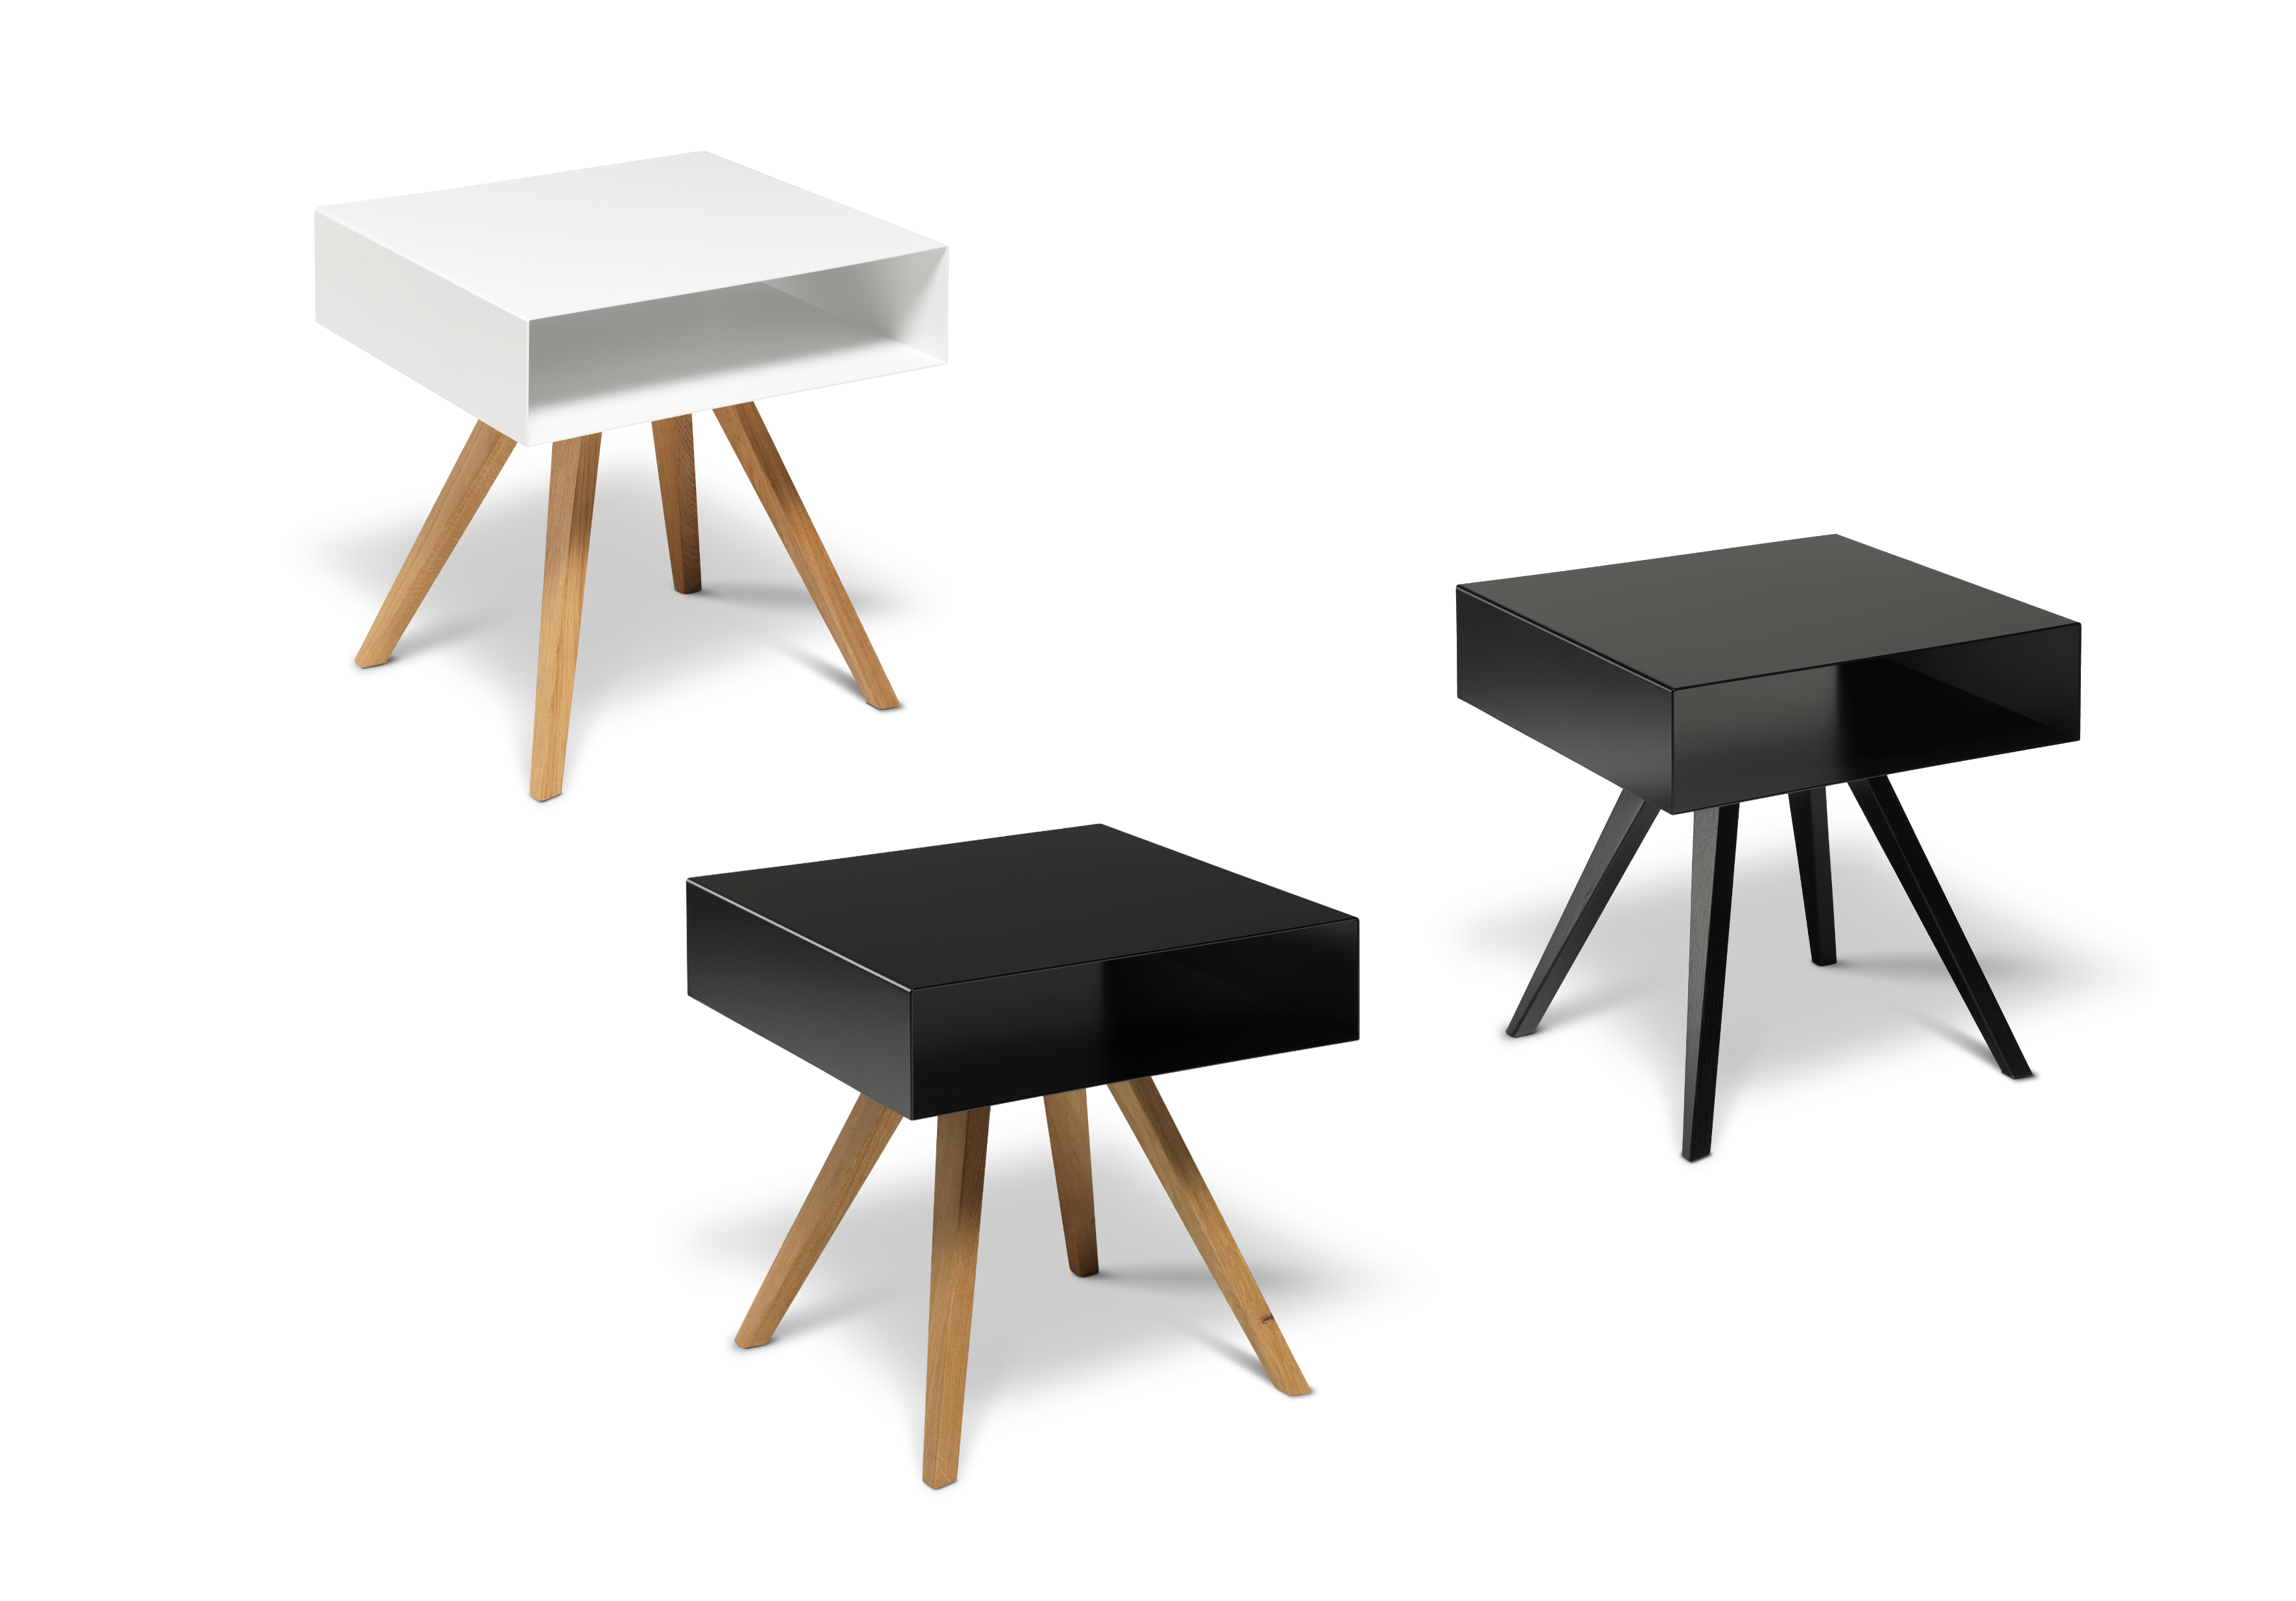 Smalle Sidetable 25 Cm.Side Table Cubo Small